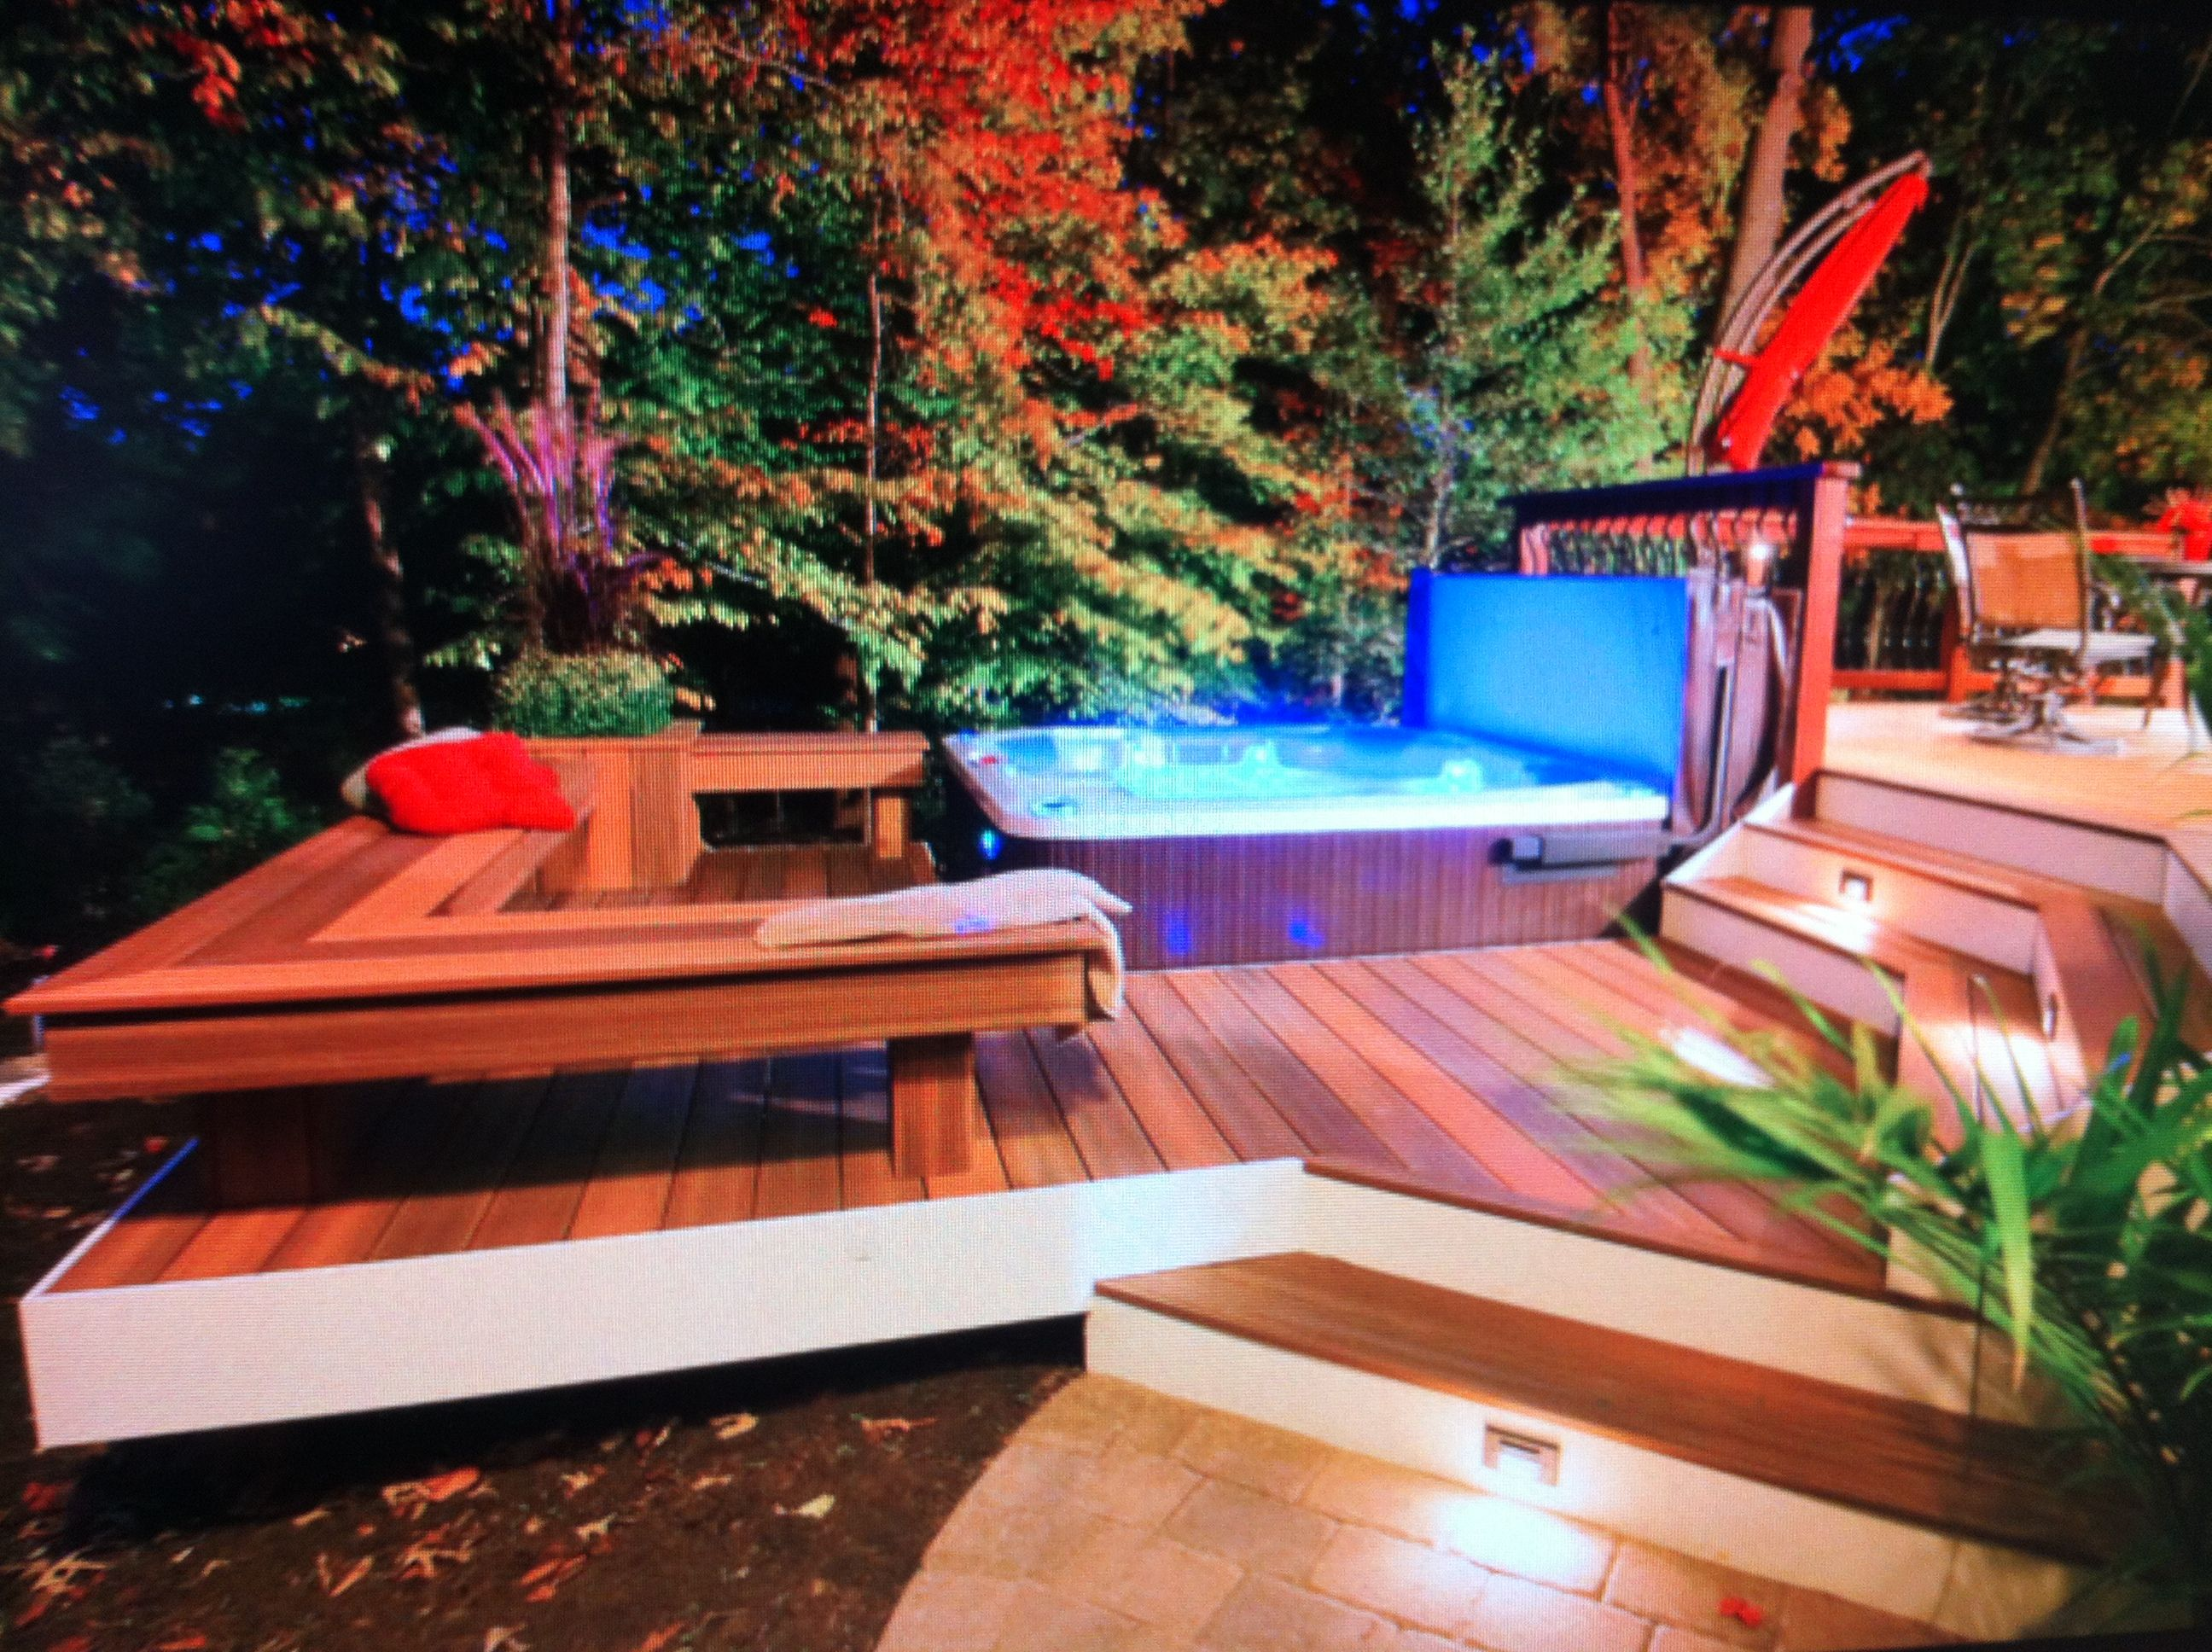 Outdoor hot tubs pictures to pin on pinterest pinsdaddy for Garden design ideas hot tubs